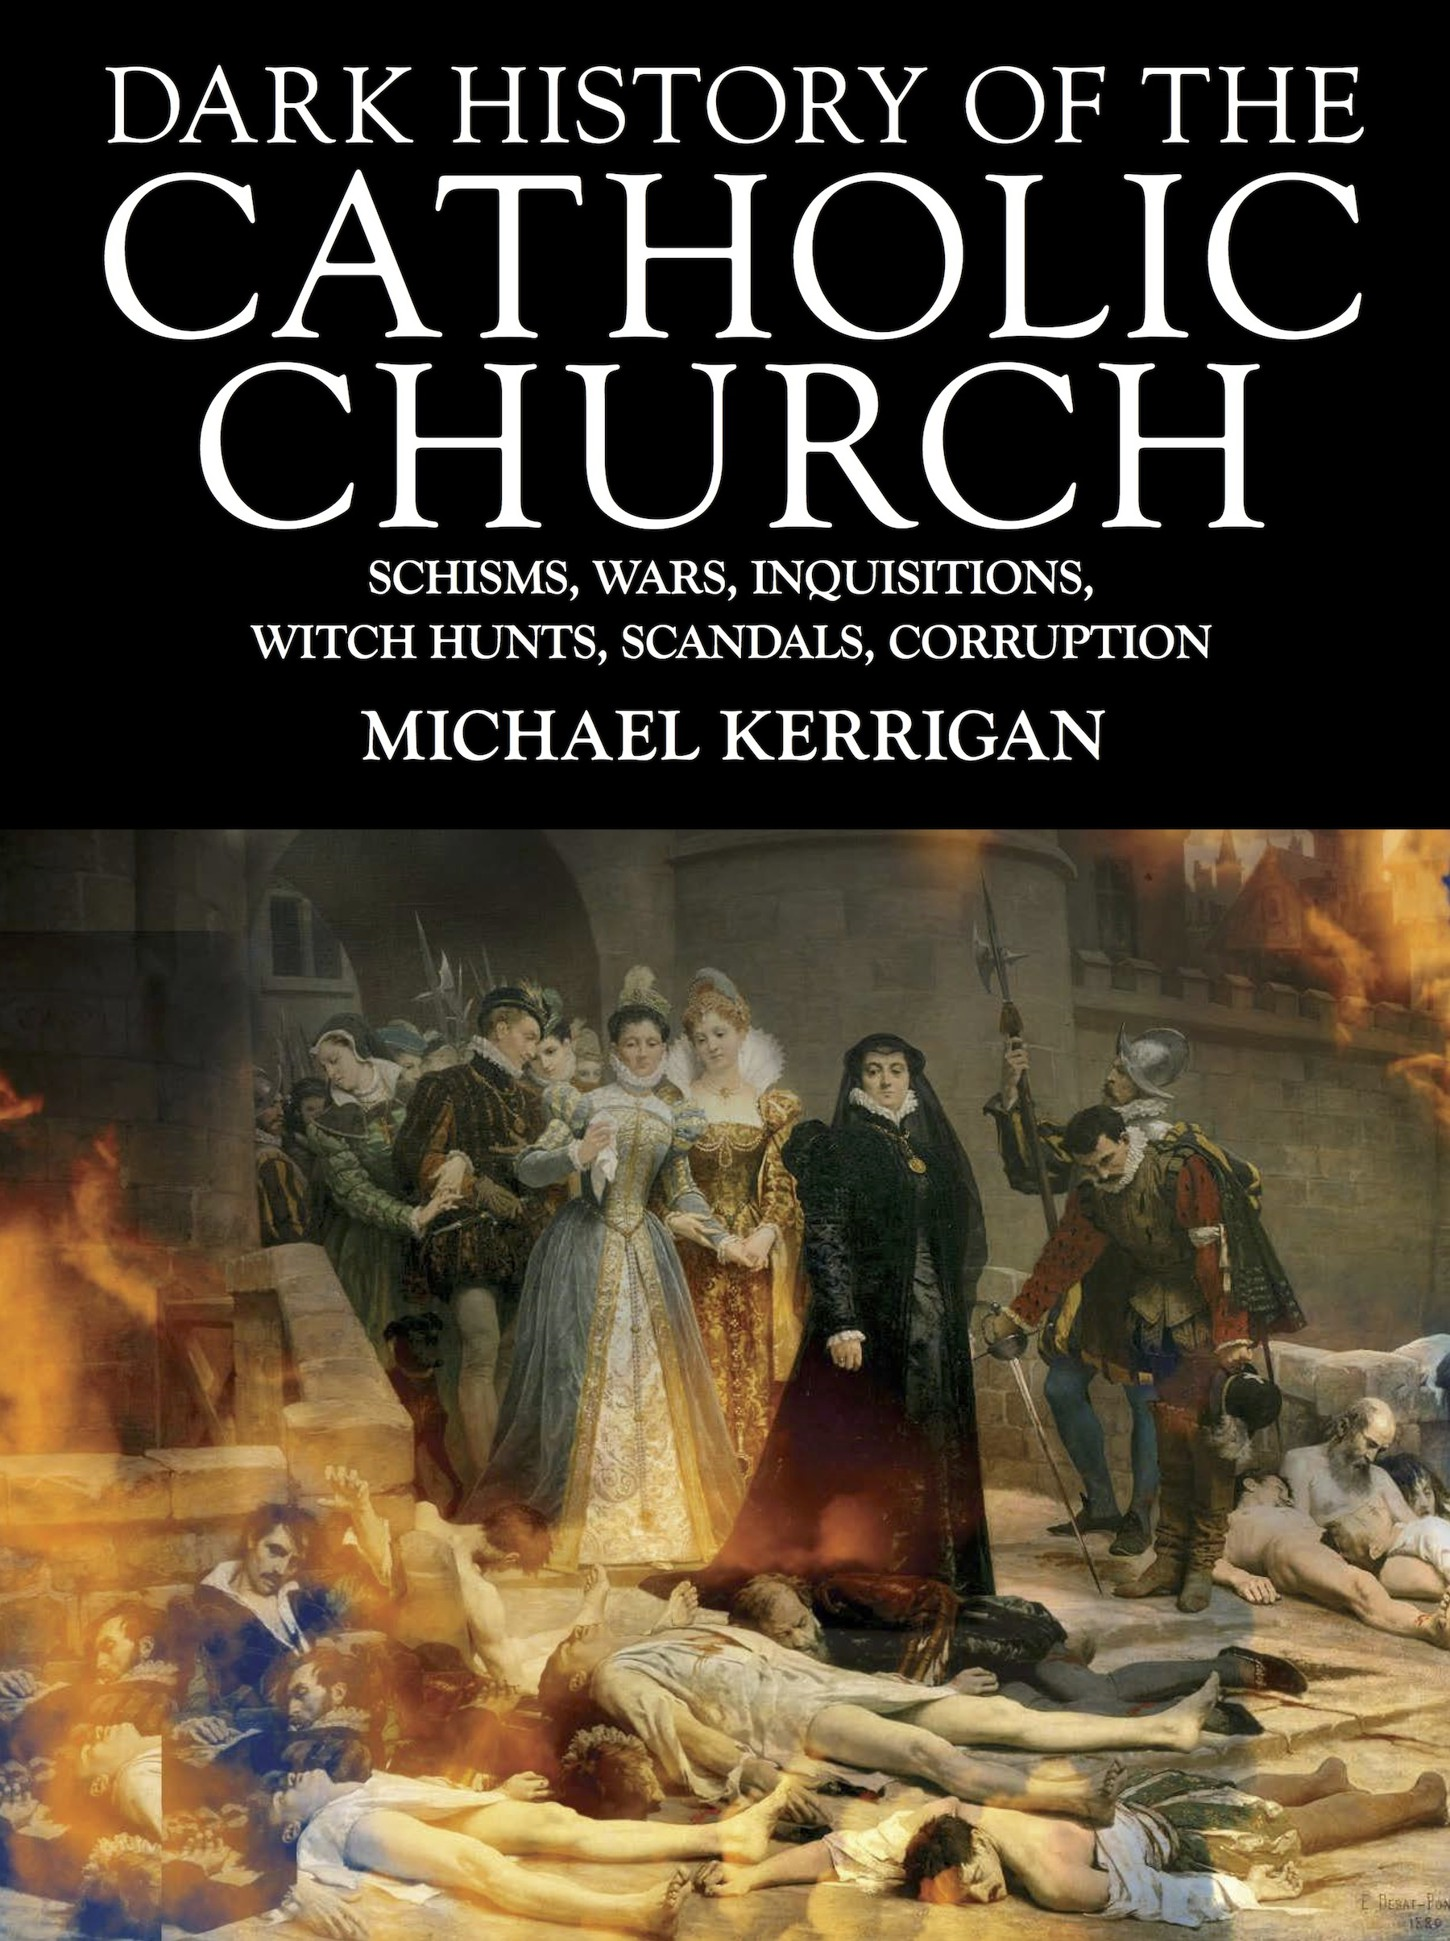 Dark History of the Catholic Church Schisms,  wars,  inquisitions,  witch hunts,  scandals,  corruption